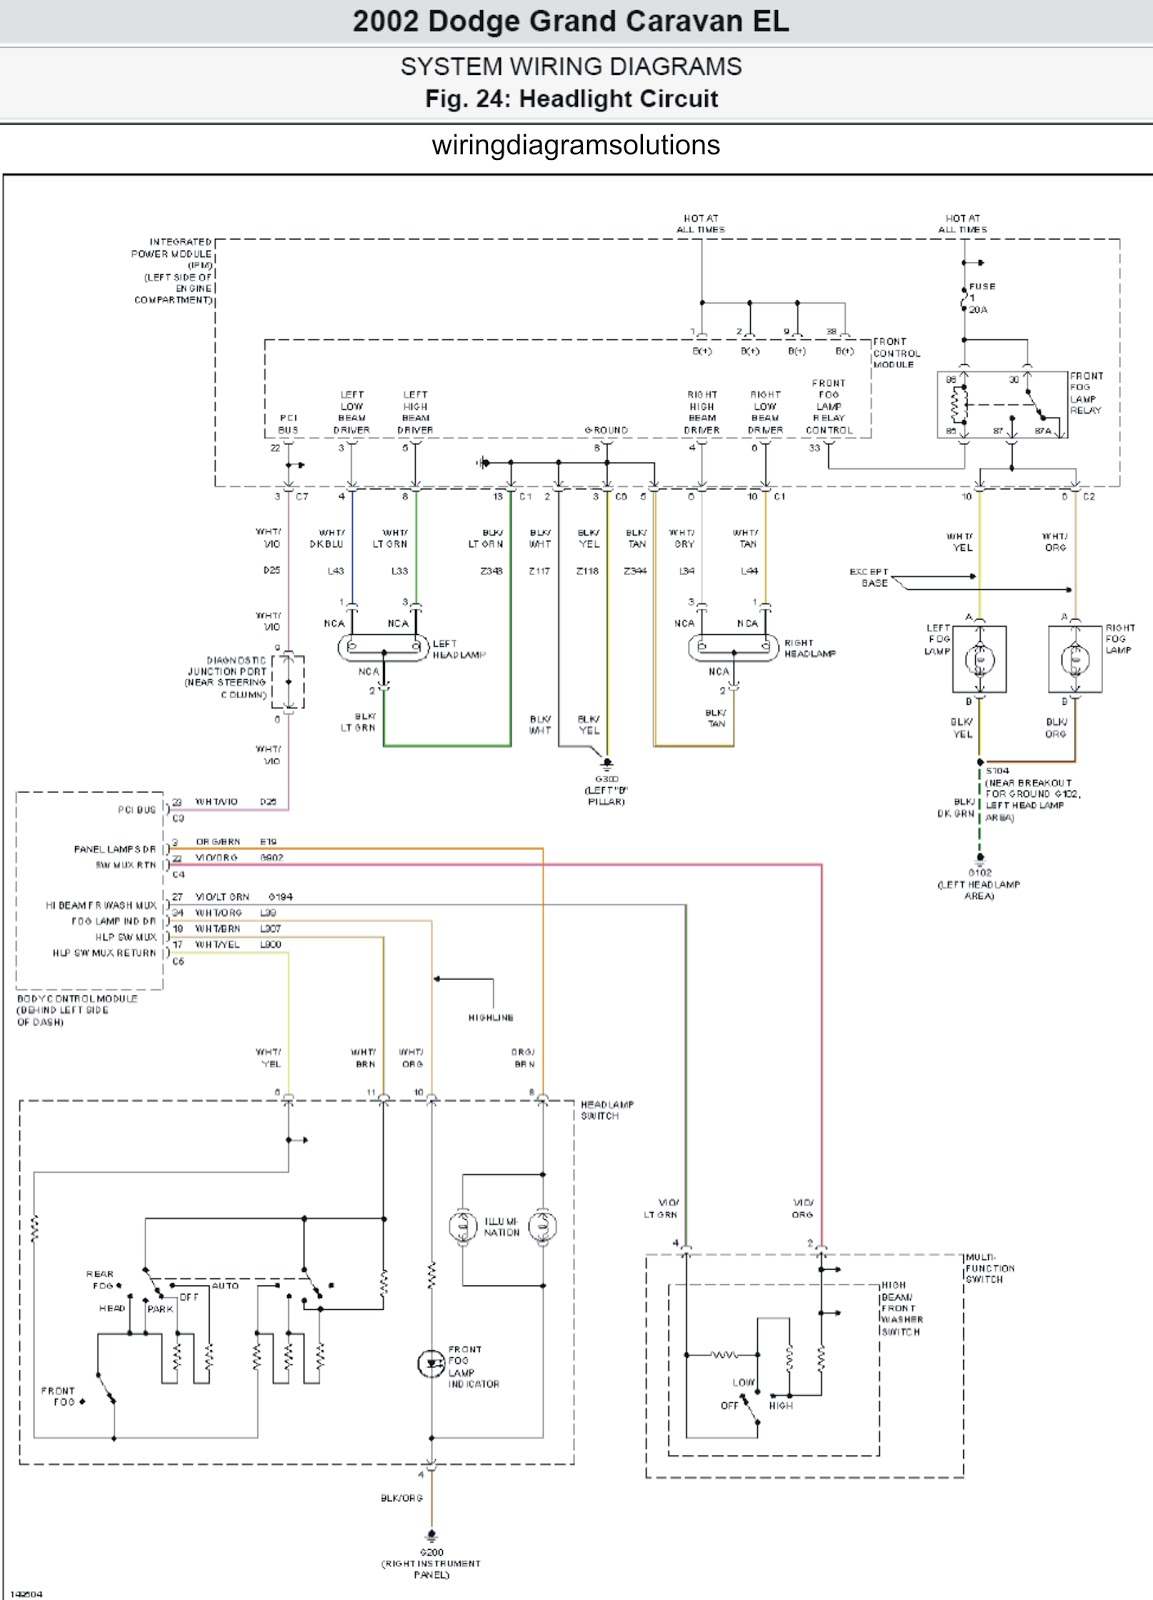 Wonderful Plymouth Voyager Wiring Diagram Stereo Ideas Best Image